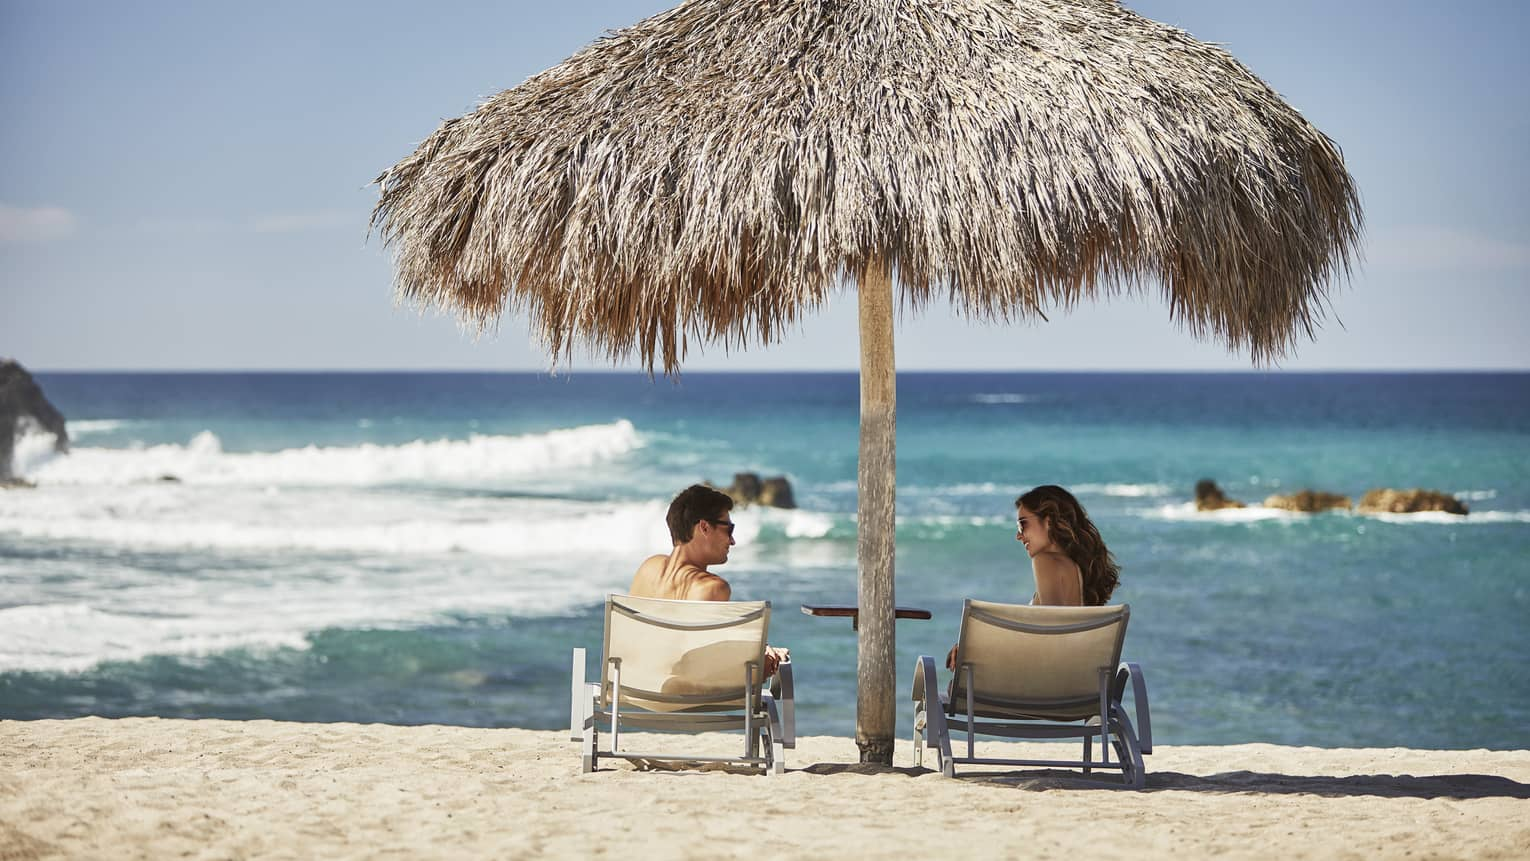 Couple on beach lounge chairs under tiki umbrella by ocean